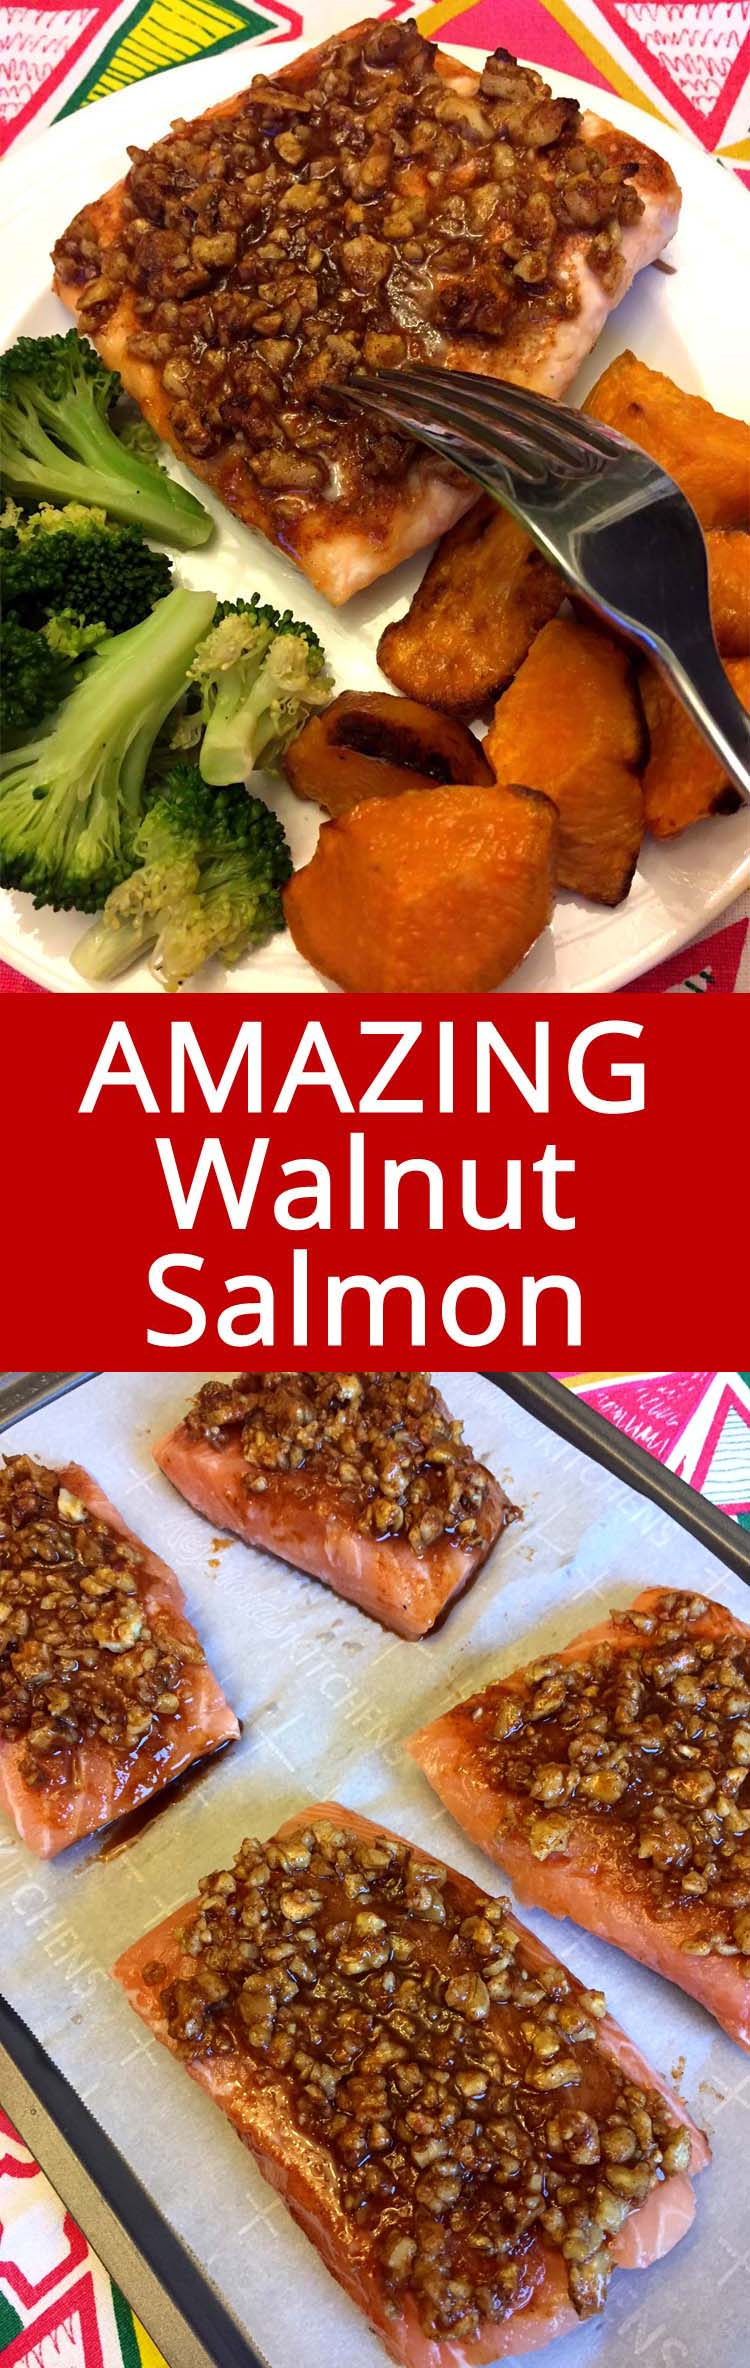 This walnut maple crusted baked salmon is amazing! The crust is so finger-lickin' good and the salmon is so tender!  Perfect meal!